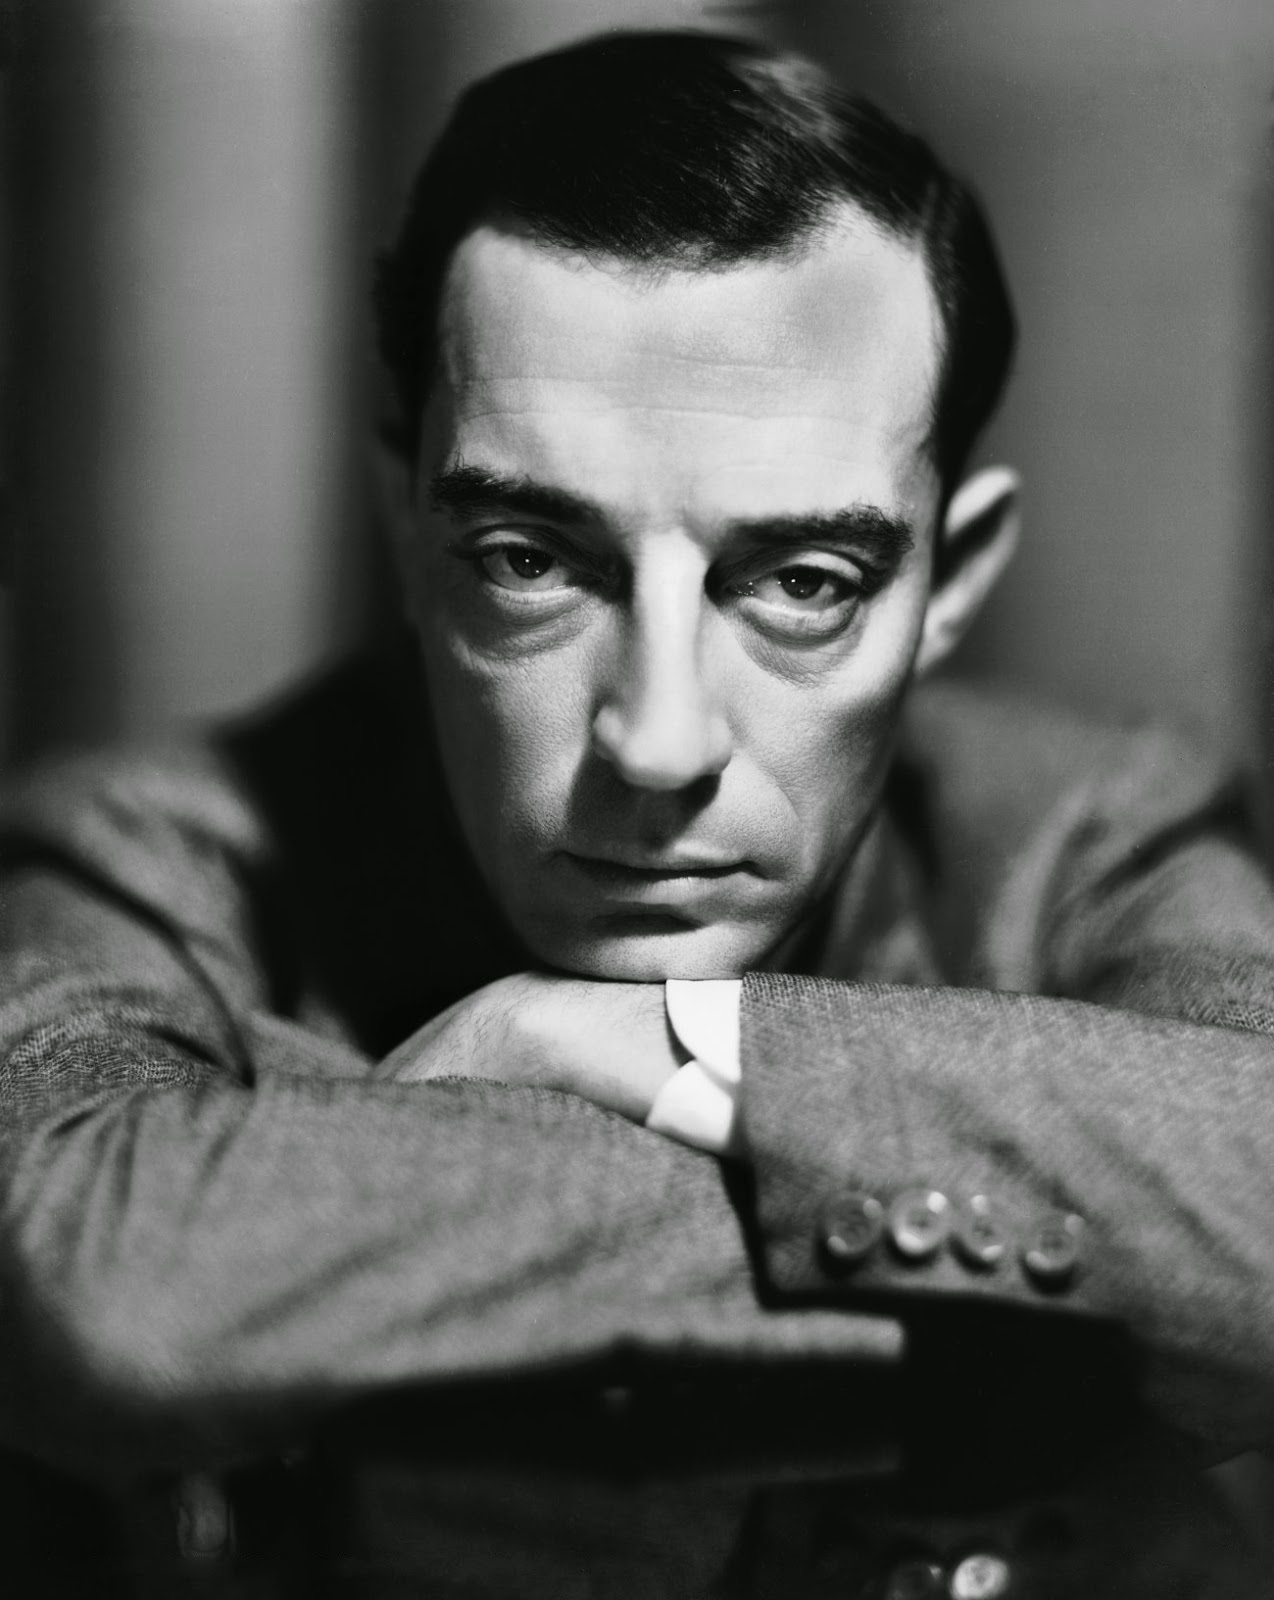 Buster Keaton silent comedian MGM documentary